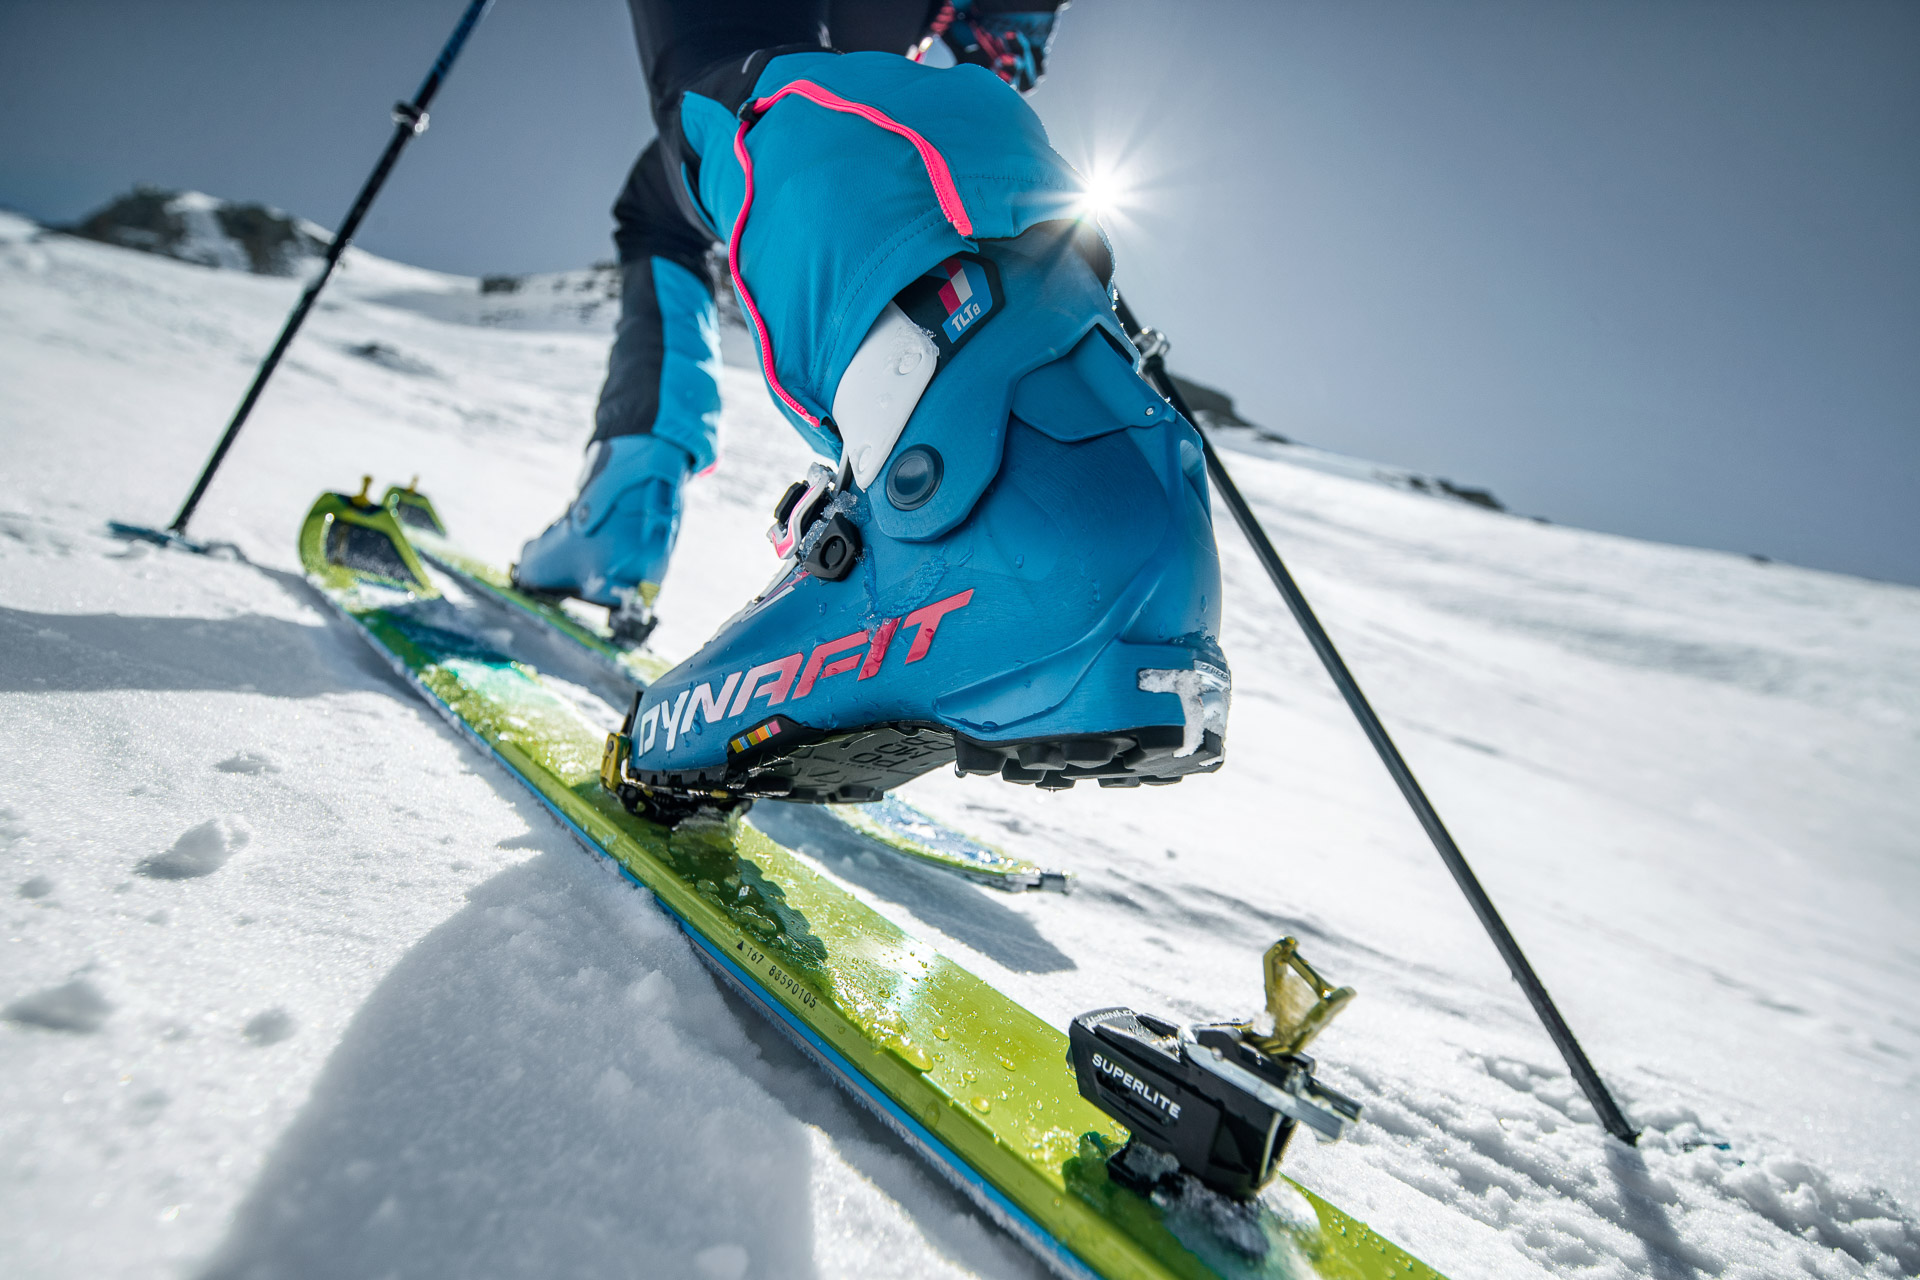 Produce plant winter Sports Equipment